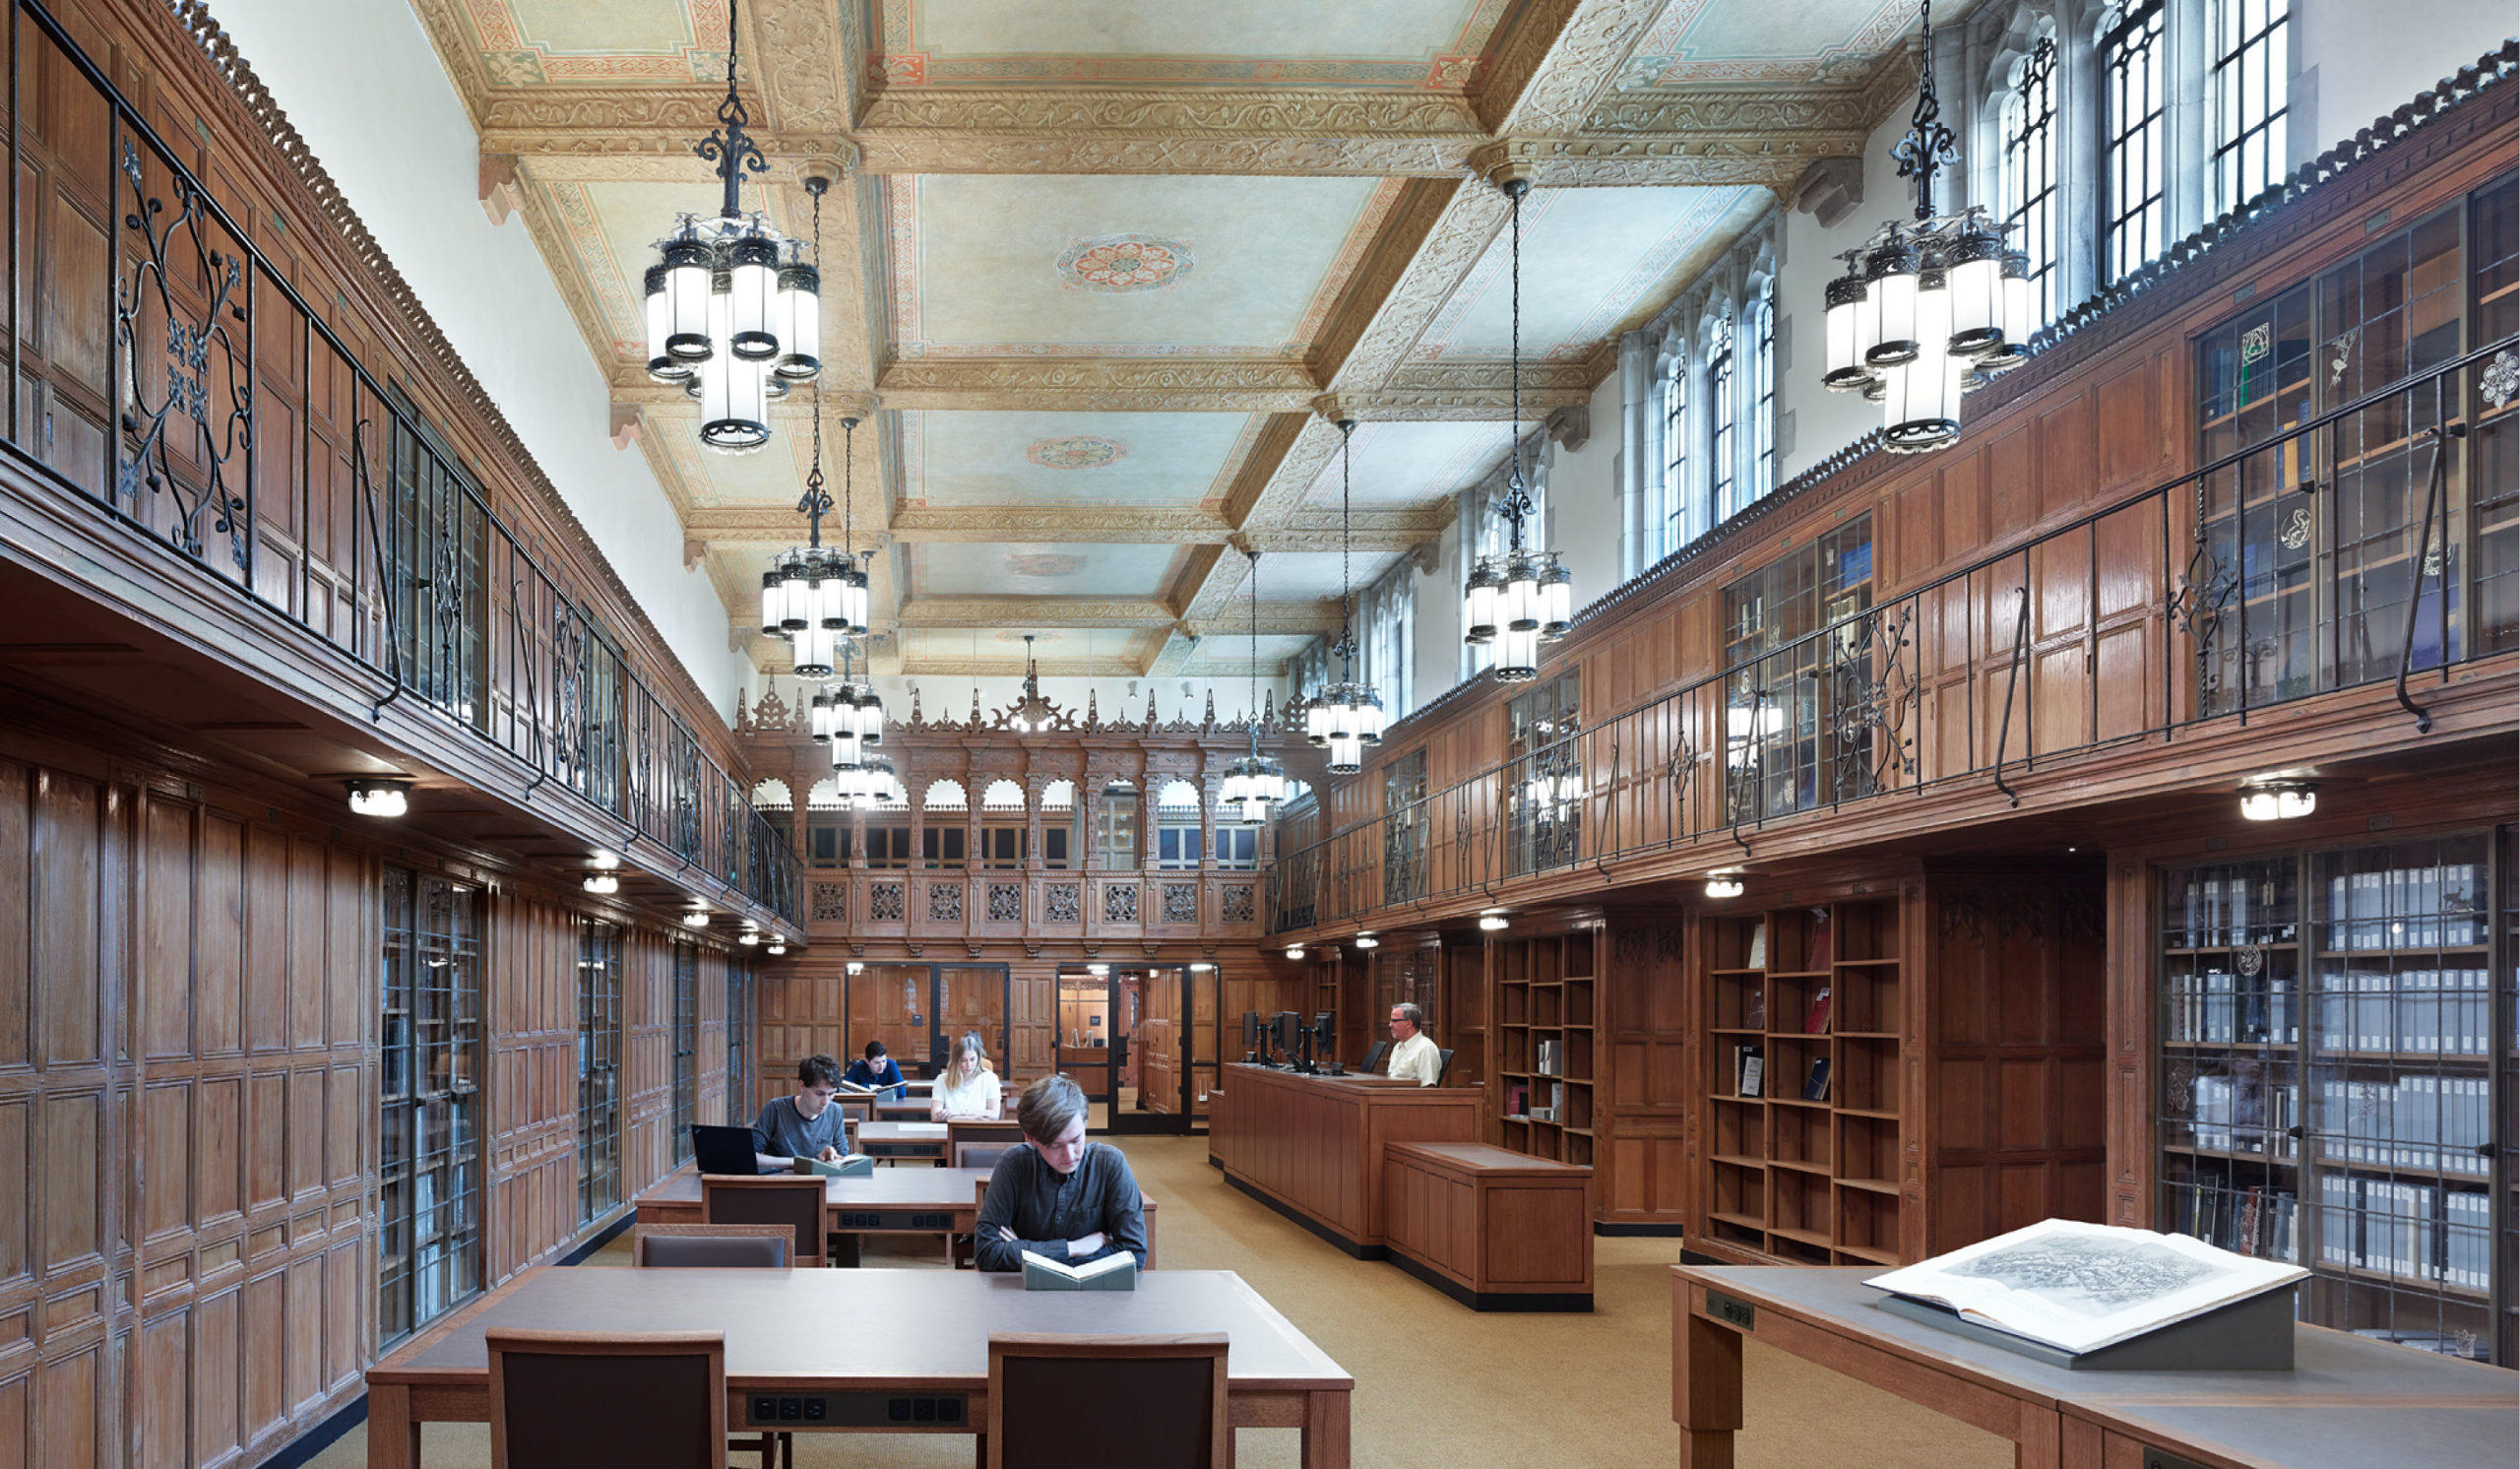 Yale Manuscripts & Archives